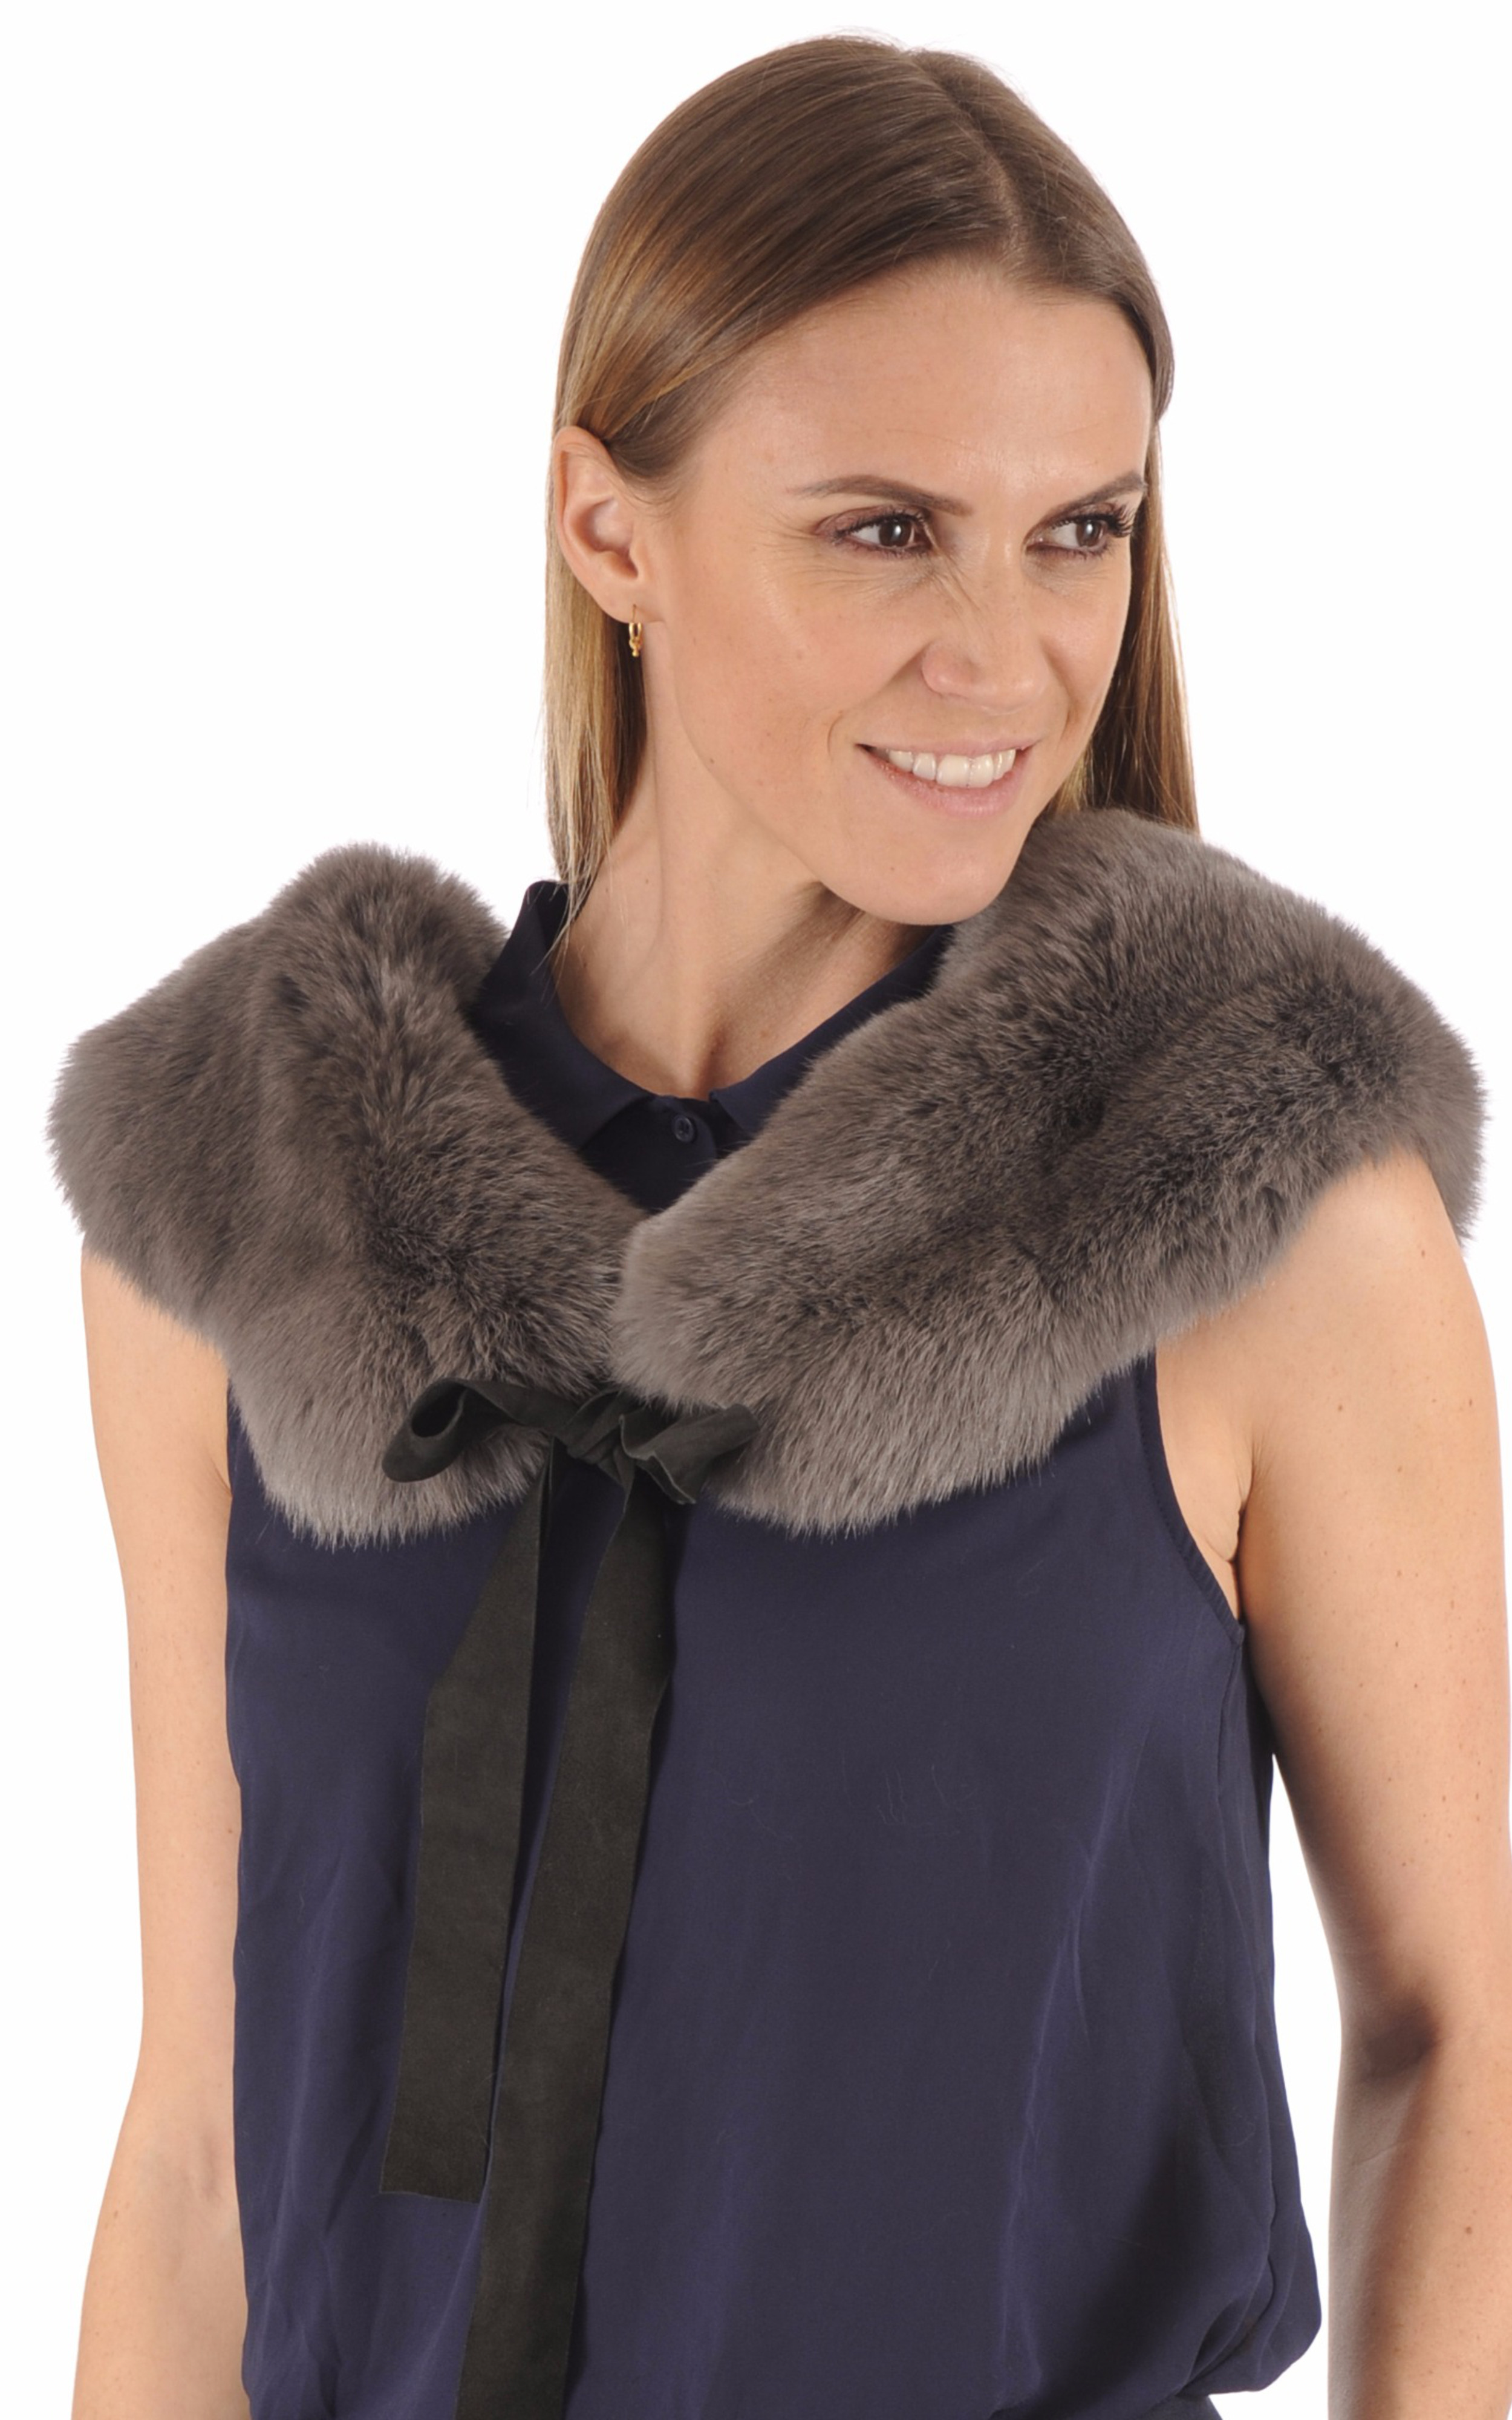 Col Lapin Anthracite Femme Lea Clement